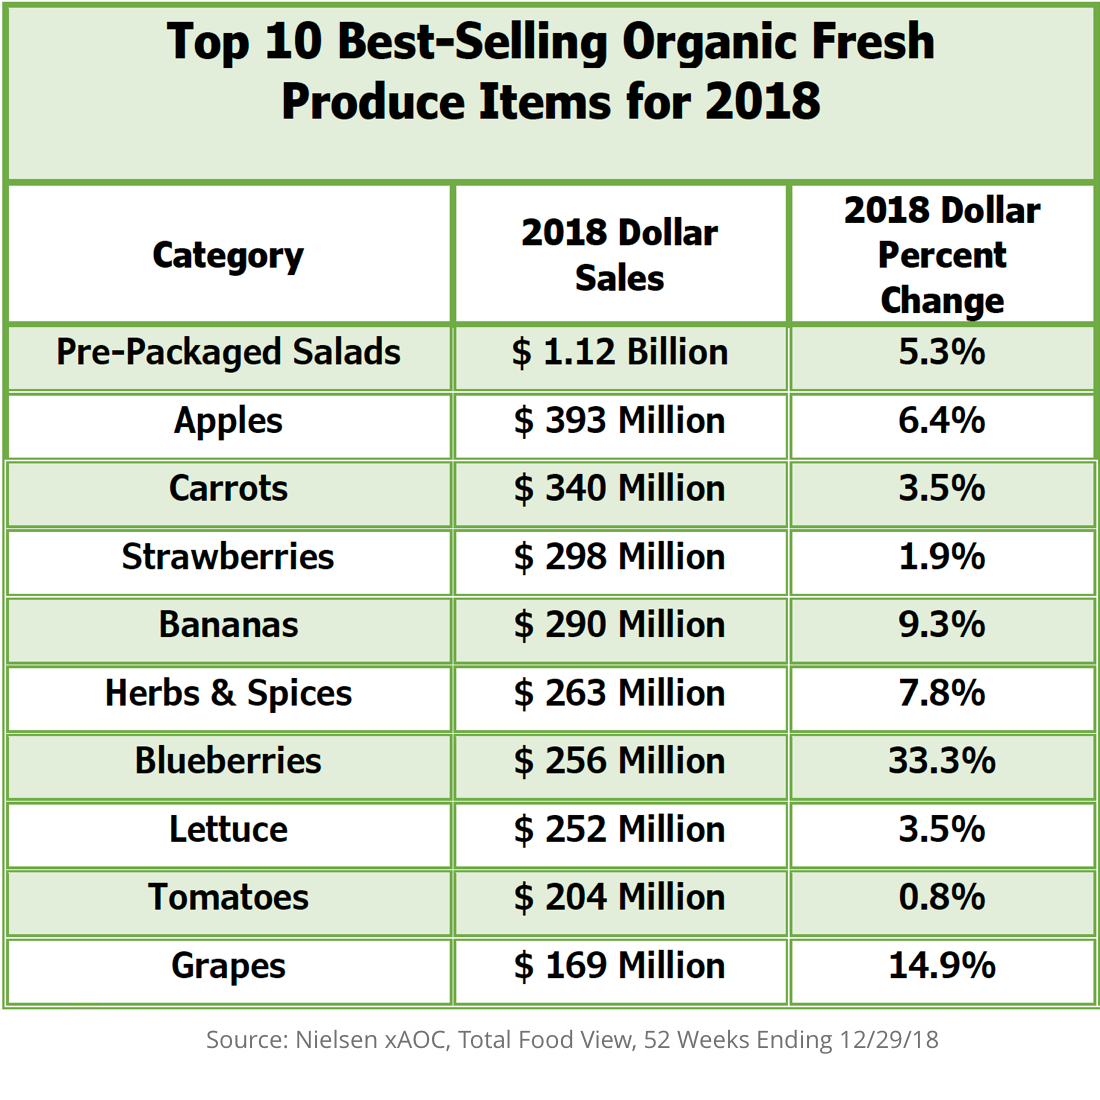 Top 10 Best-Selling Organic Fresh Produce Items for 2018